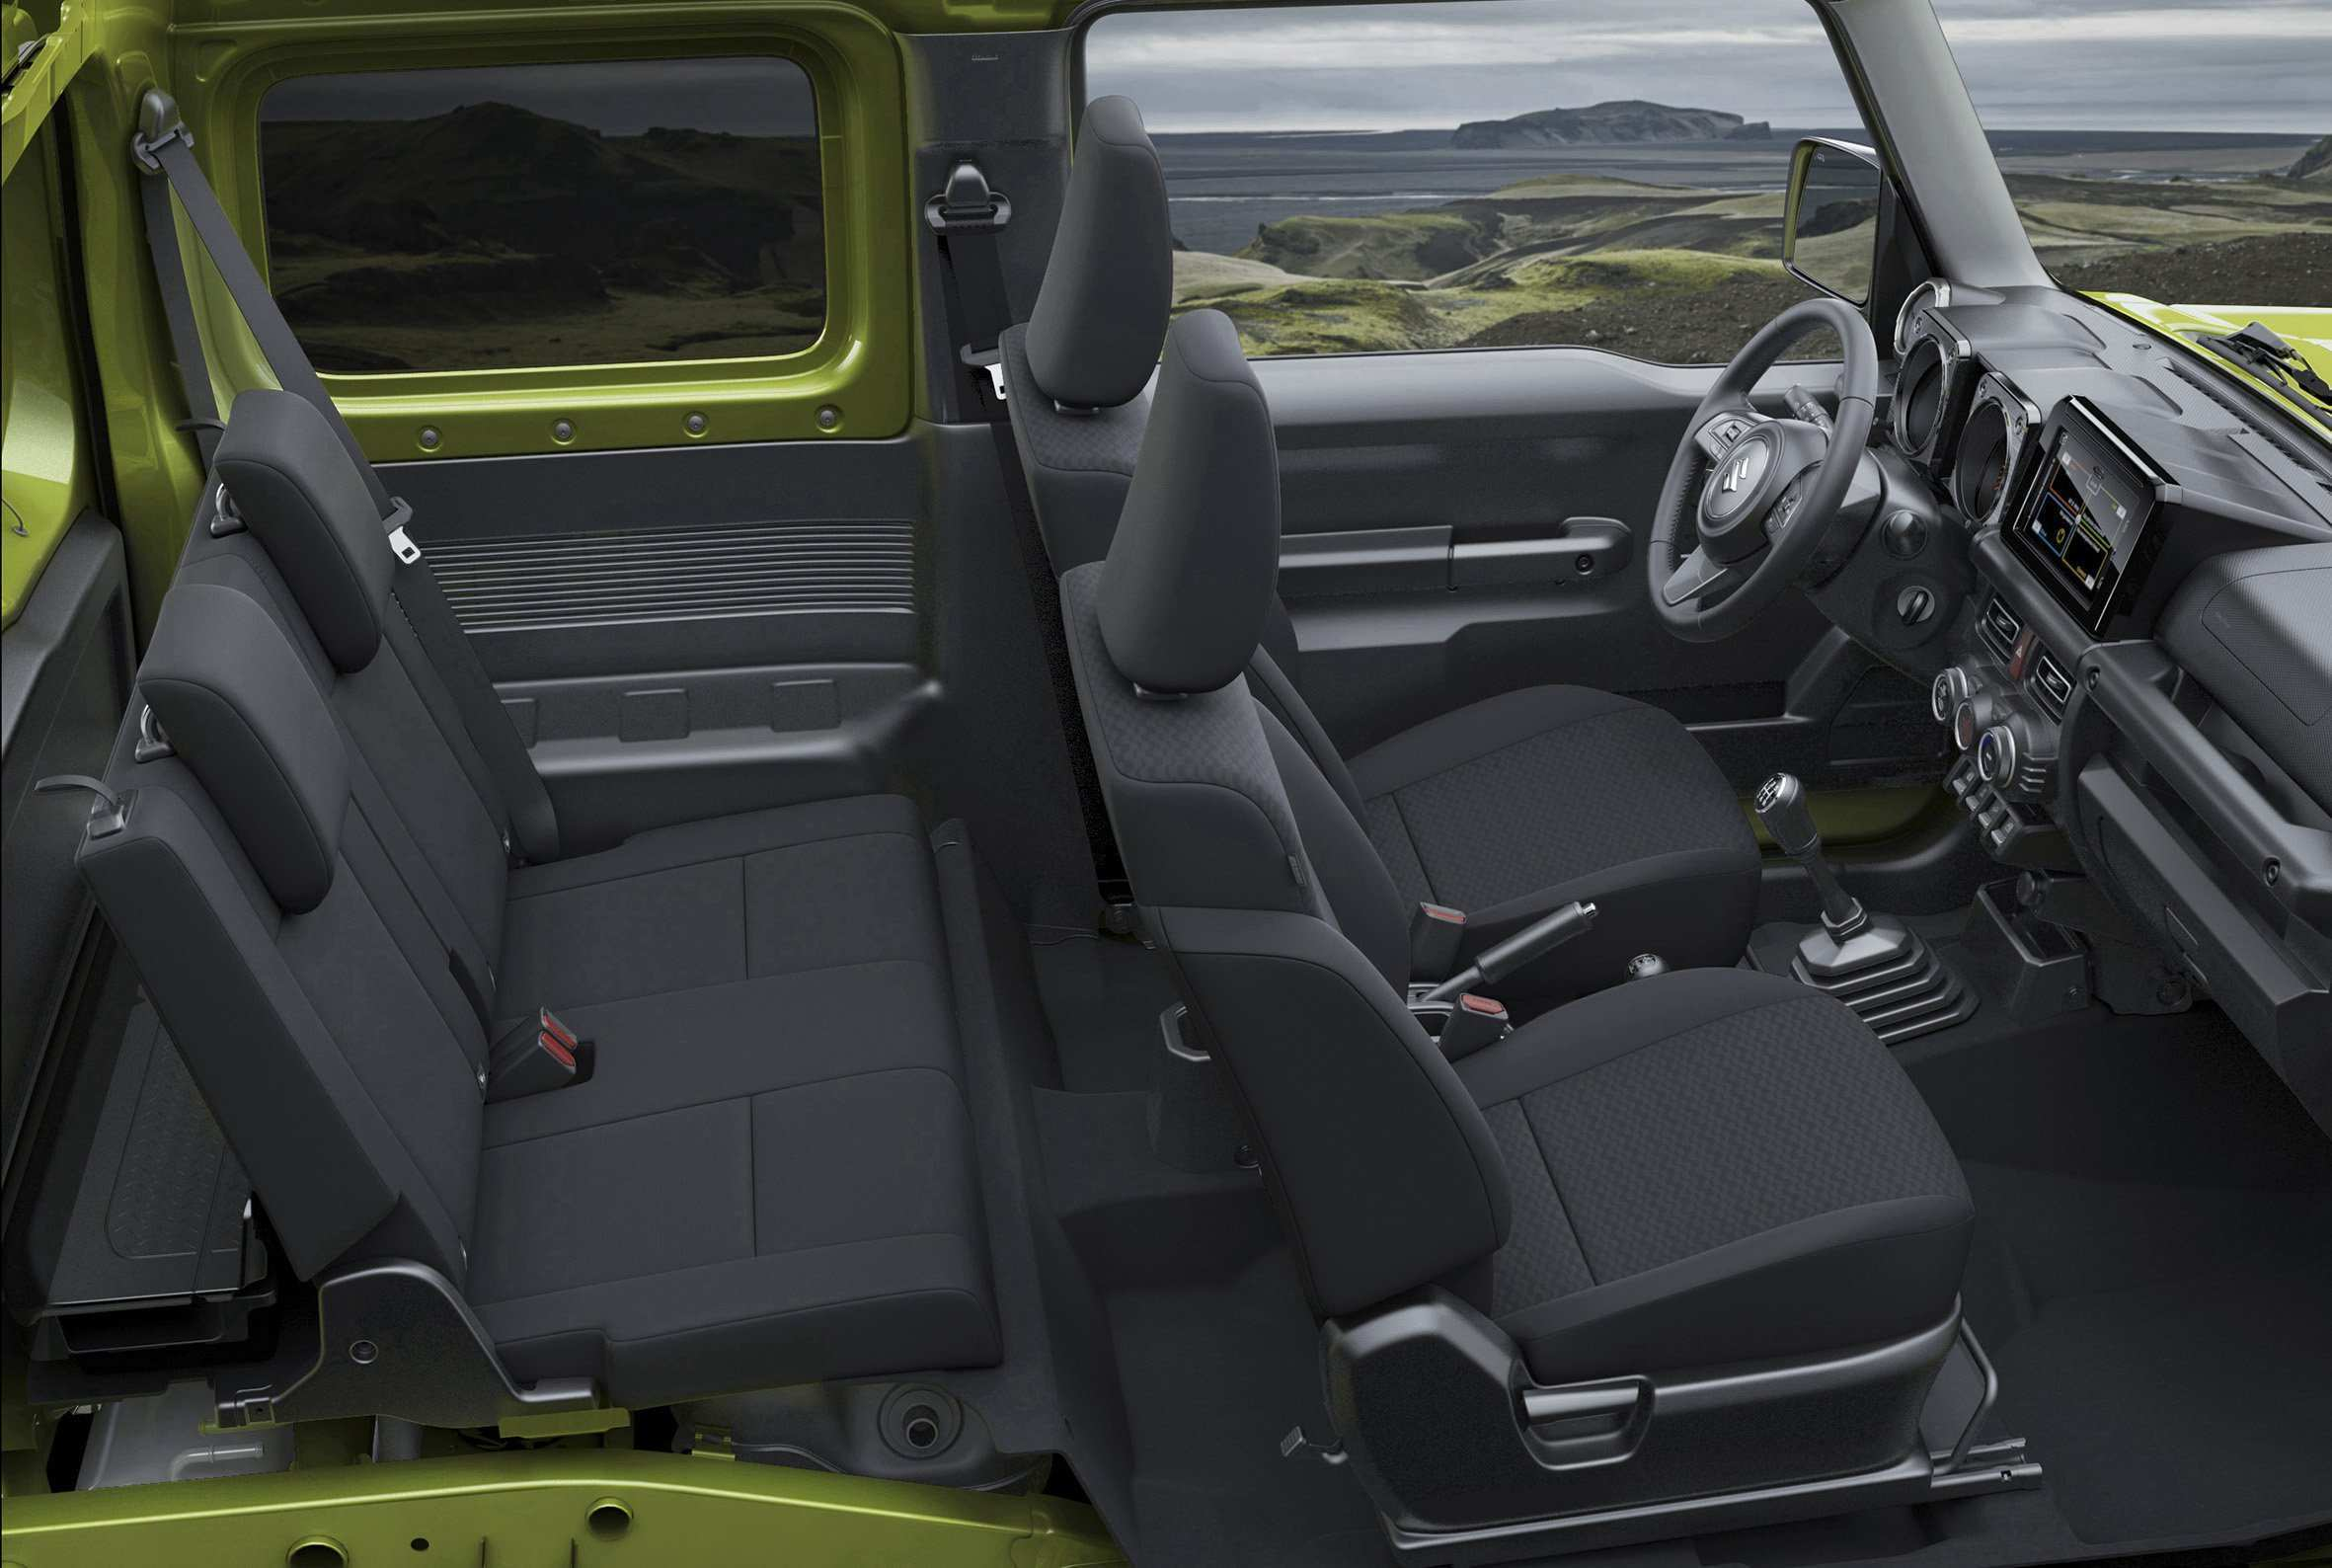 91 The 2019 Suzuki Jimny Model Interior